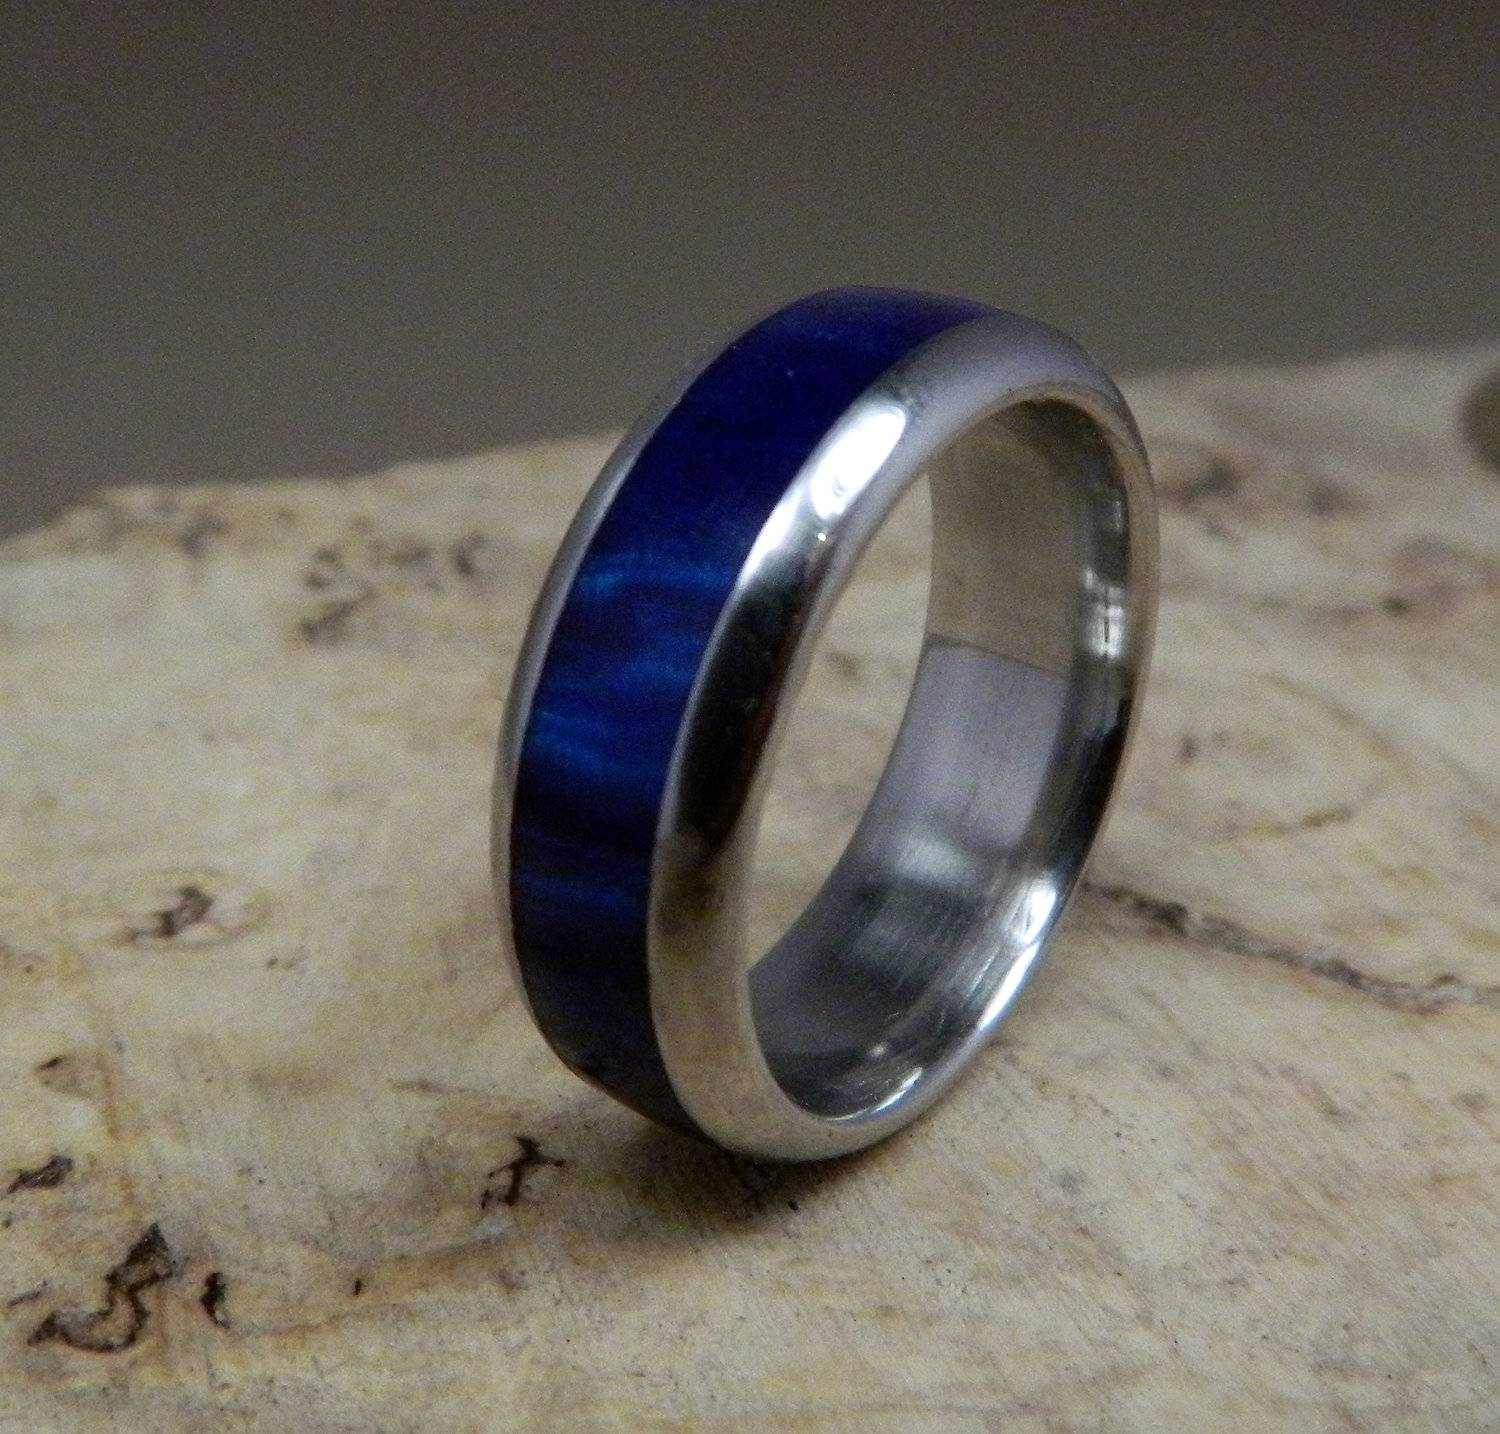 Stainless Steel Ring, Blue Ring, Acrylic Ring, Wedding Ring, Mens Pertaining To Mens Handmade Wedding Bands (View 9 of 15)